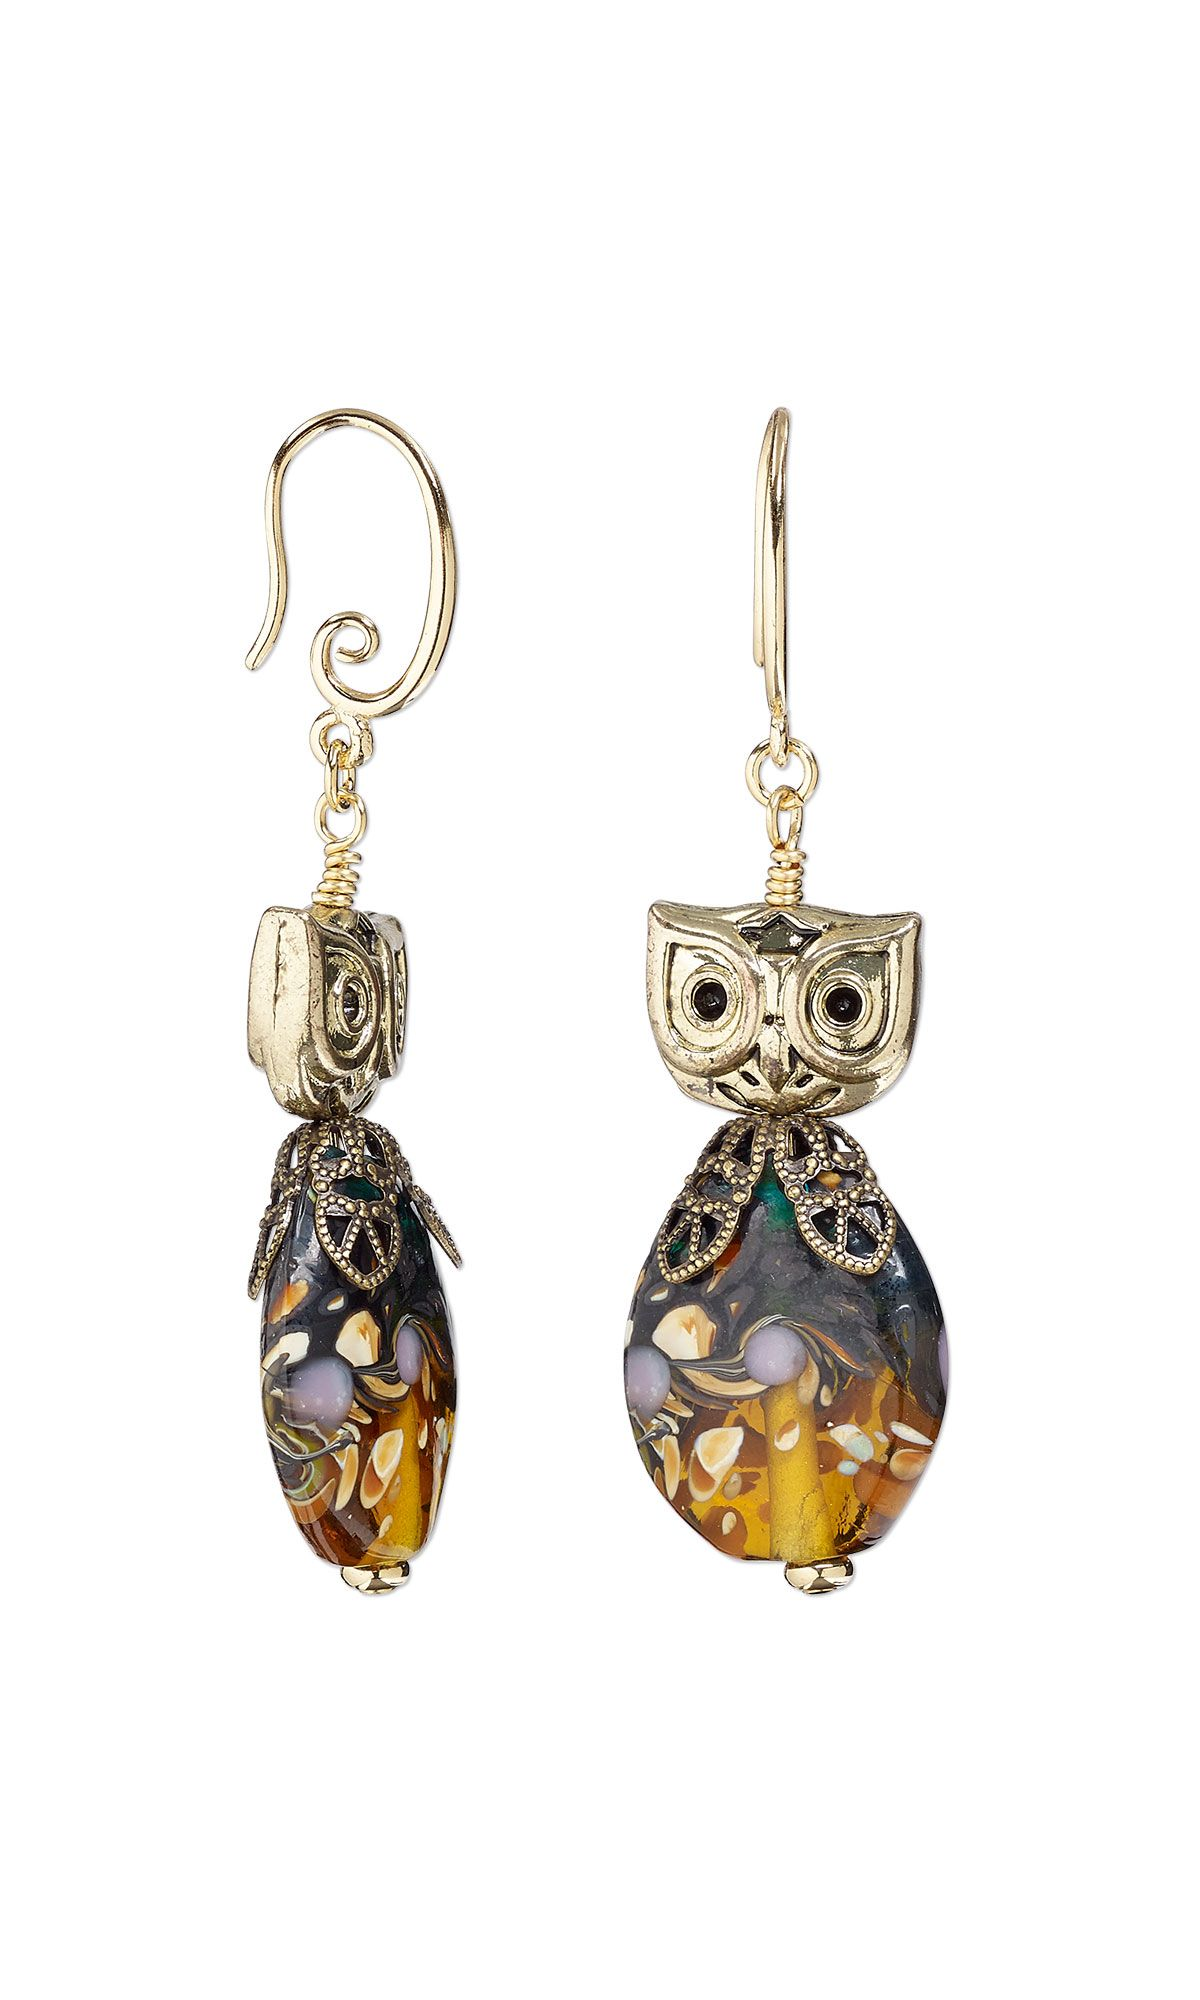 jewelry design earrings with antiqued gold finished pewter